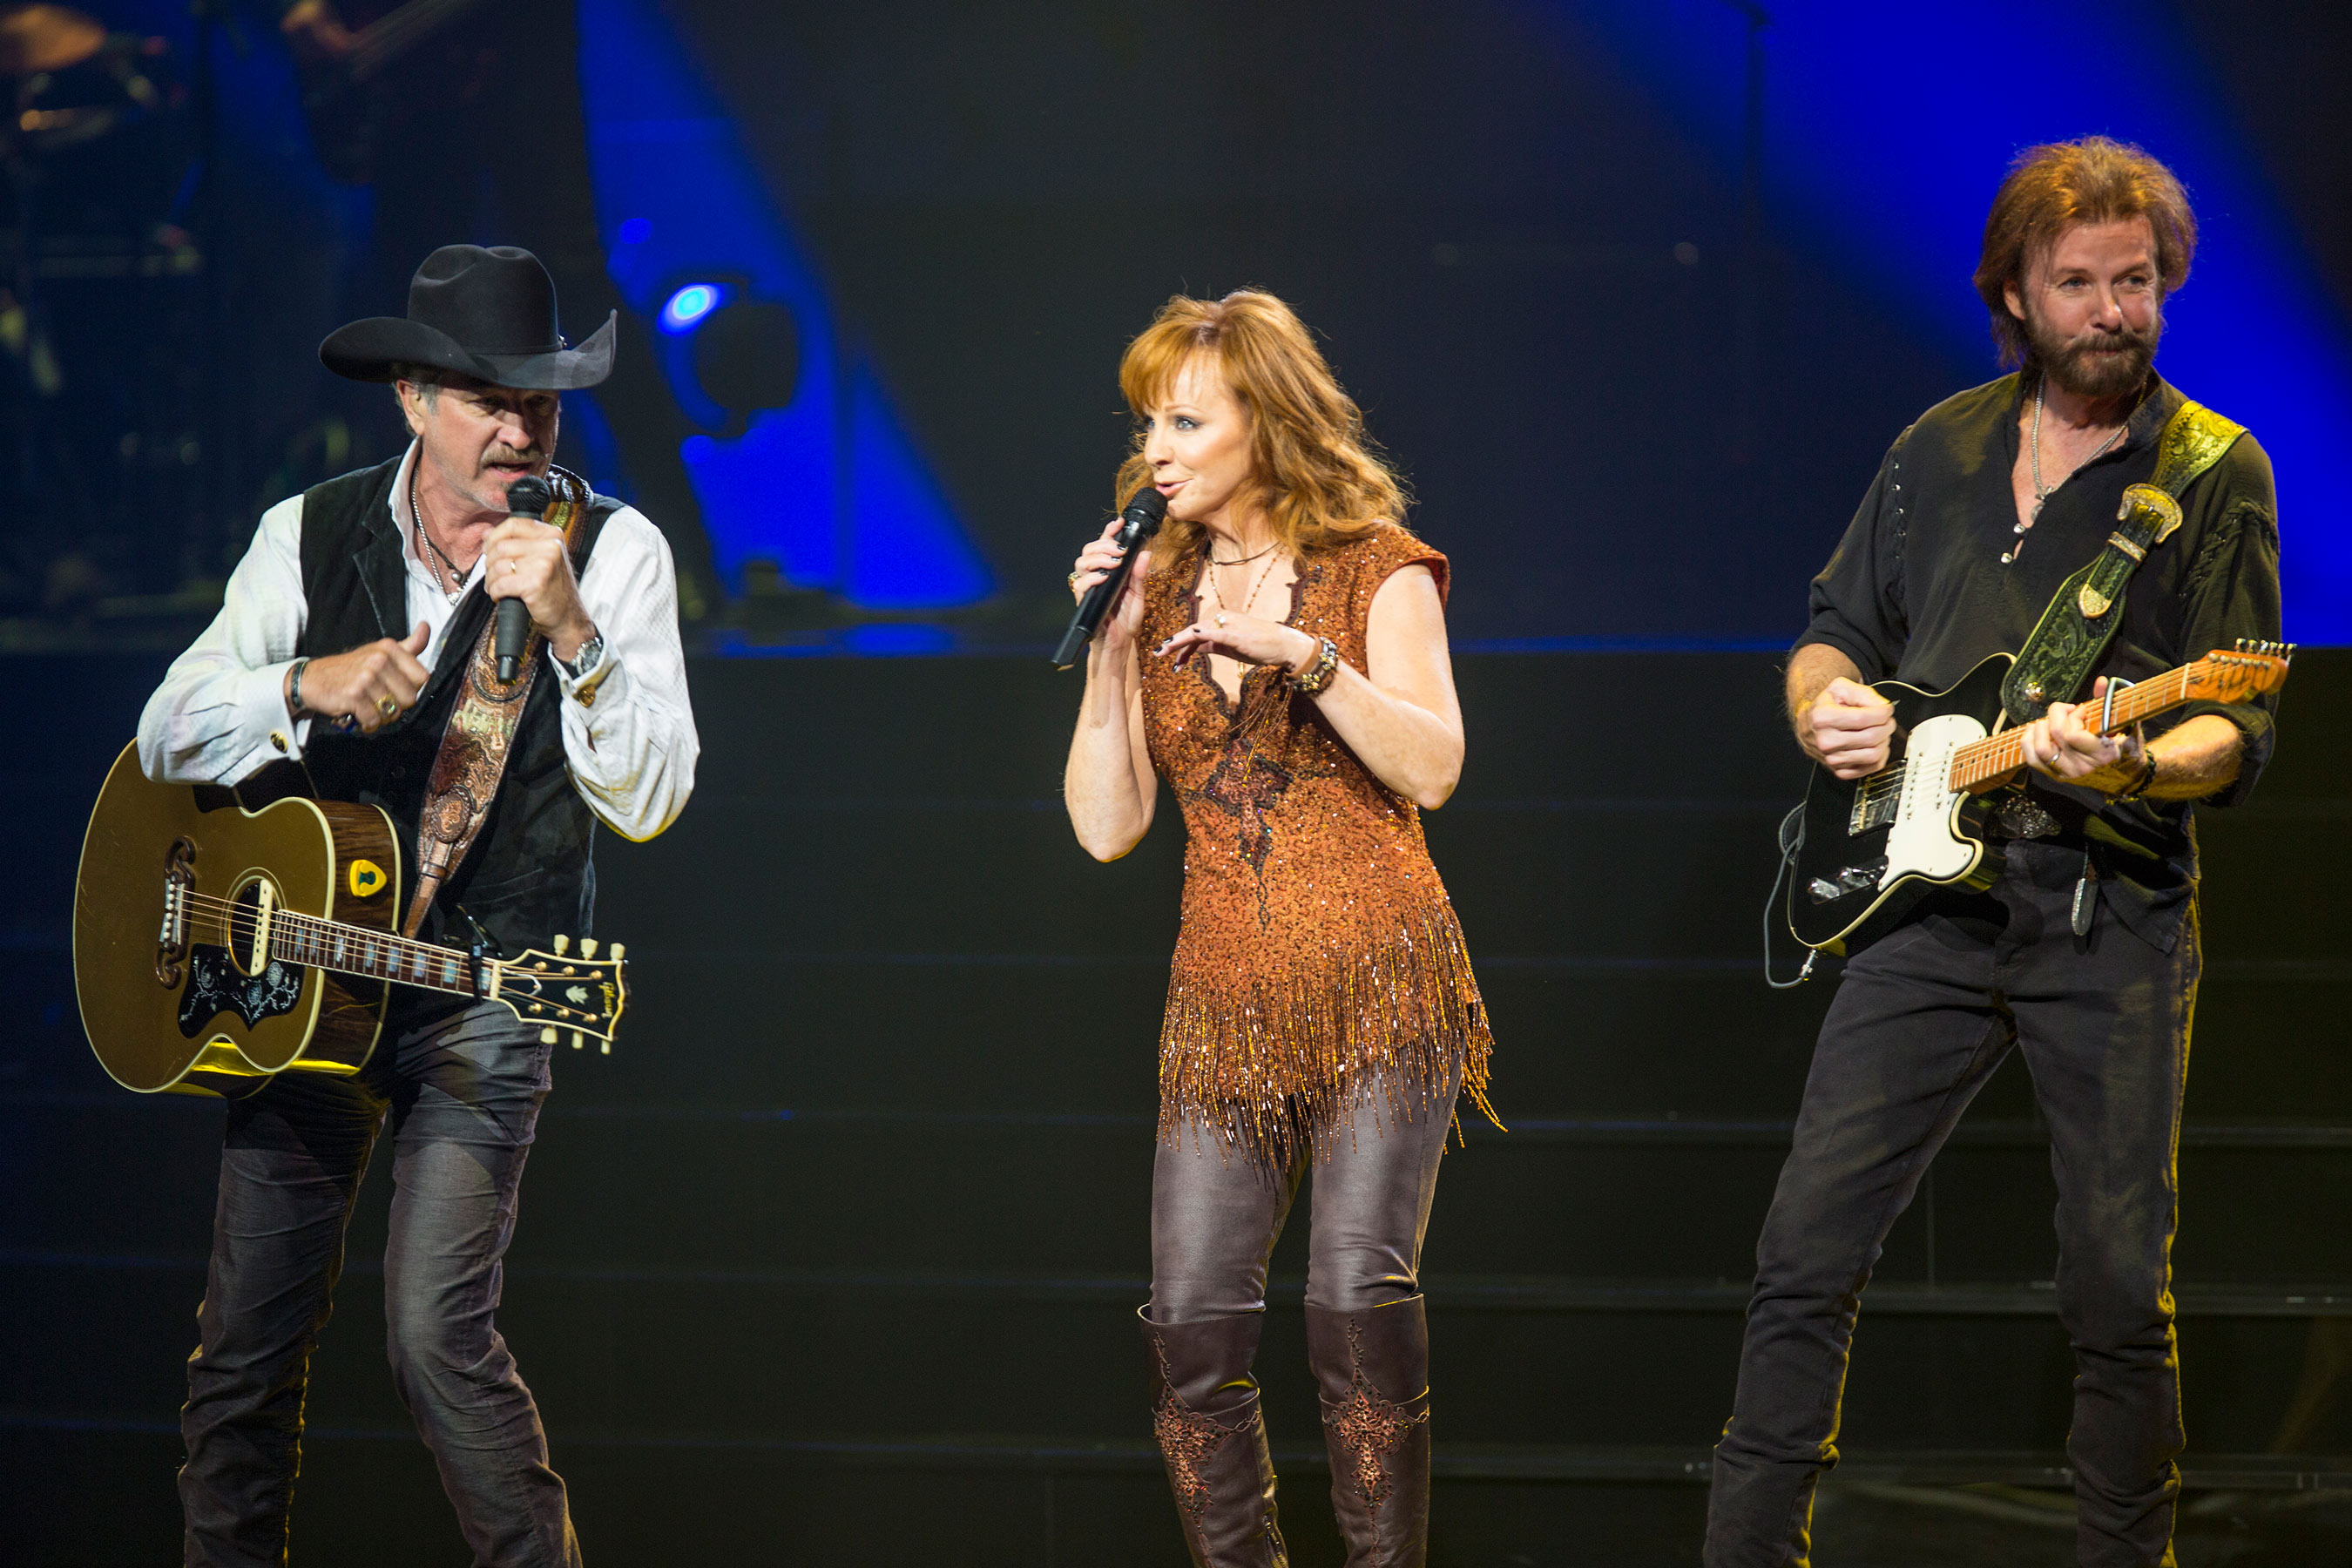 Kix Brooks, Reba and Ronnie Dunn launch their new Las Vegas residency, REBA, BROOKS & DUNN: Together in Vegas at The Colosseum at Caesars Palace on Wednesday, June 17. Photo credit: Justin McIntosh